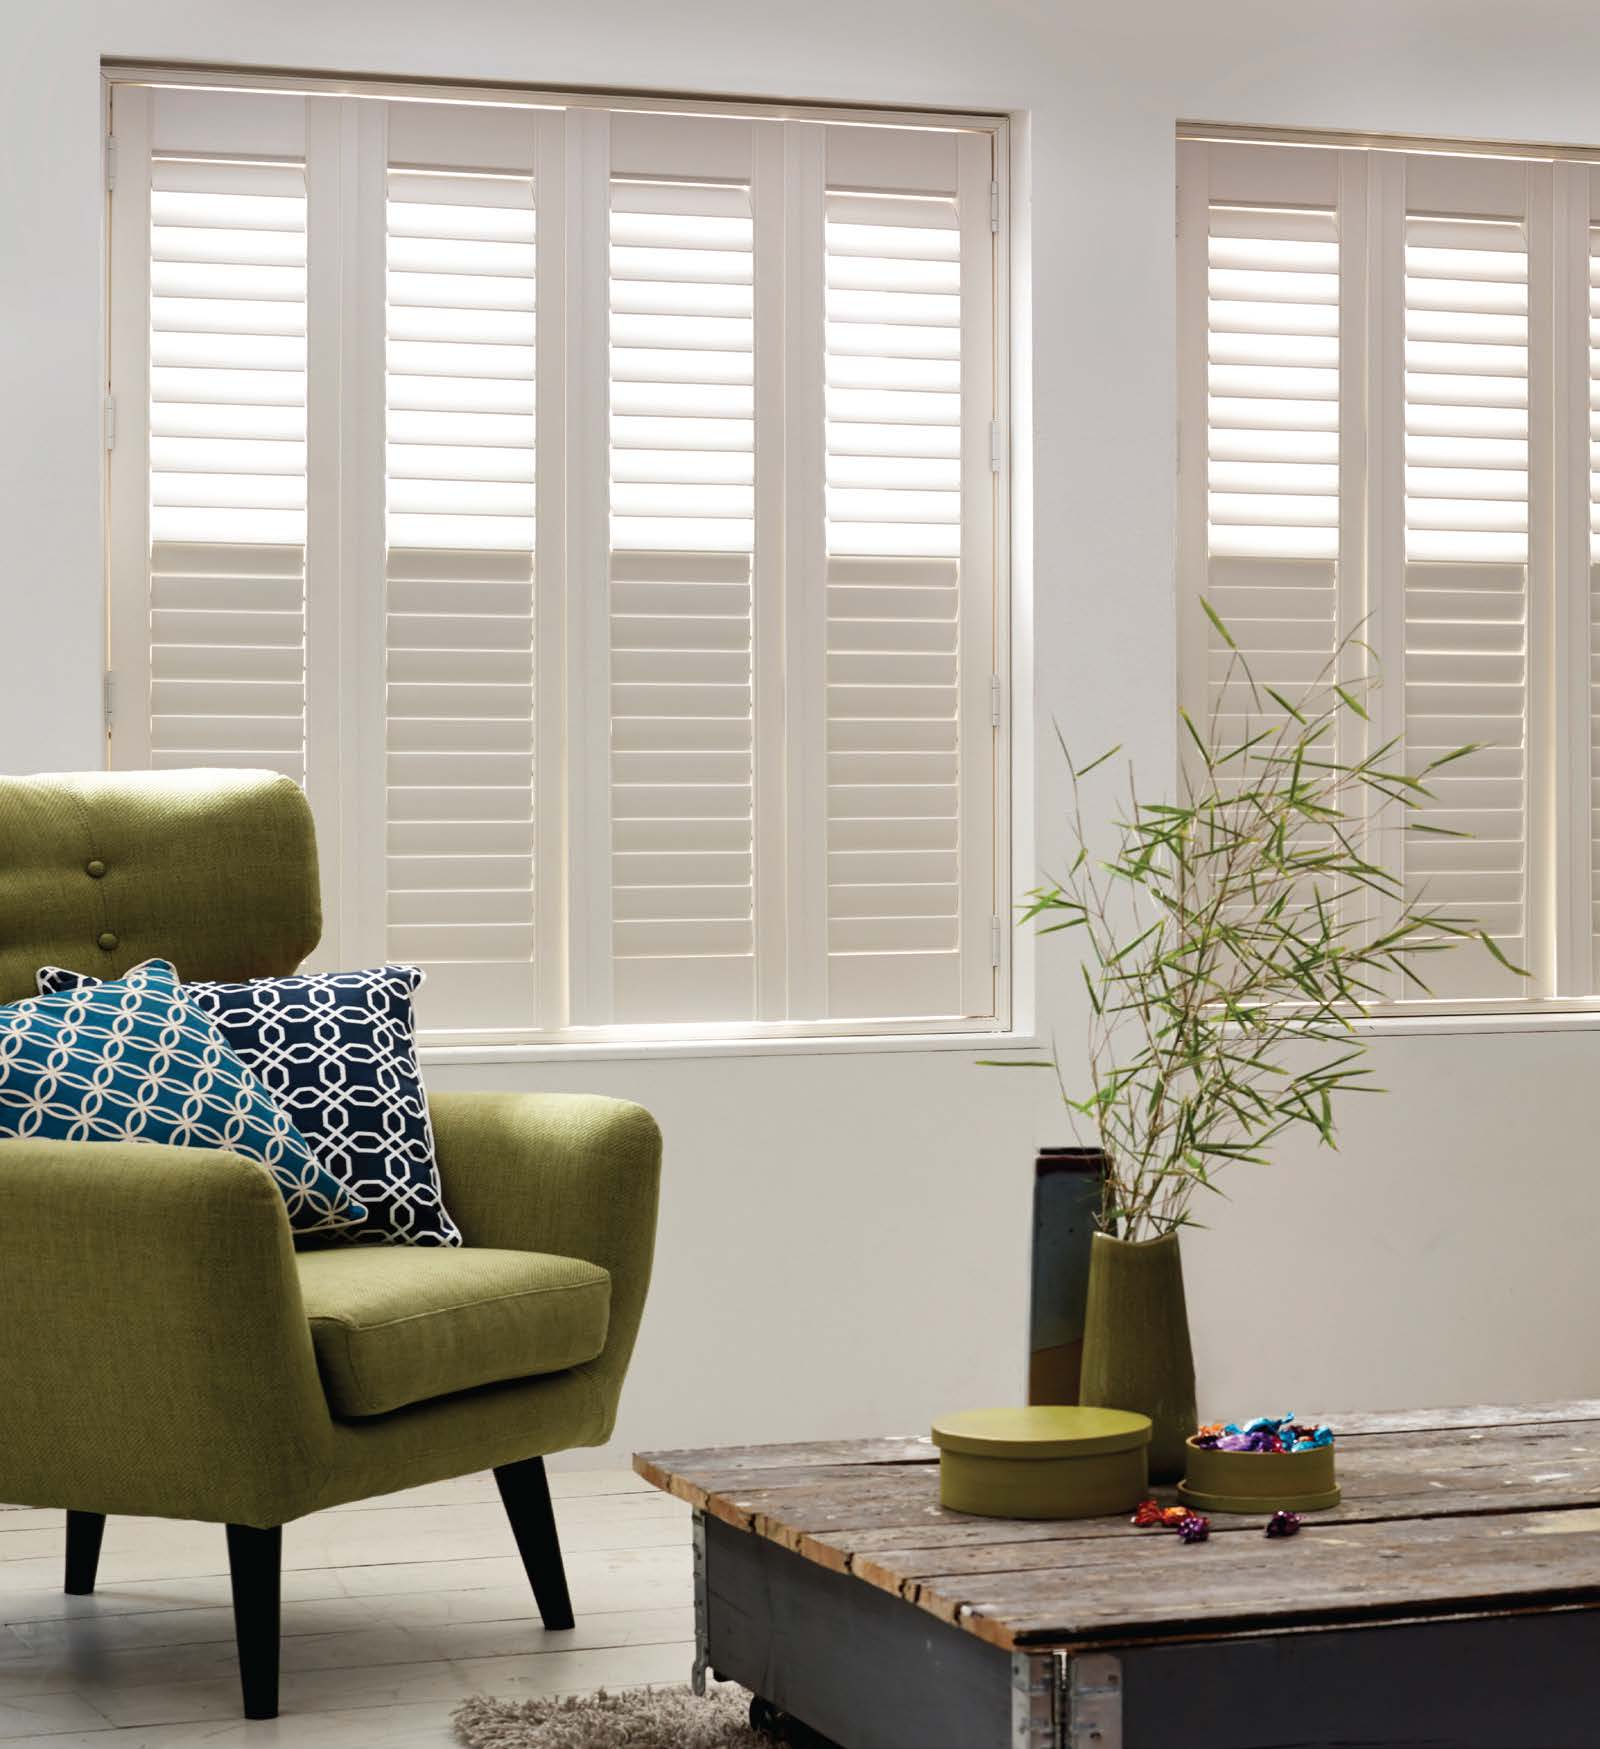 Window pane types - Full Height Shutters Are Suitable For Most Windows This Type Of Shutter Covers The Whole Of The Window Pane For Maximum Privacy Insulation And Blocking